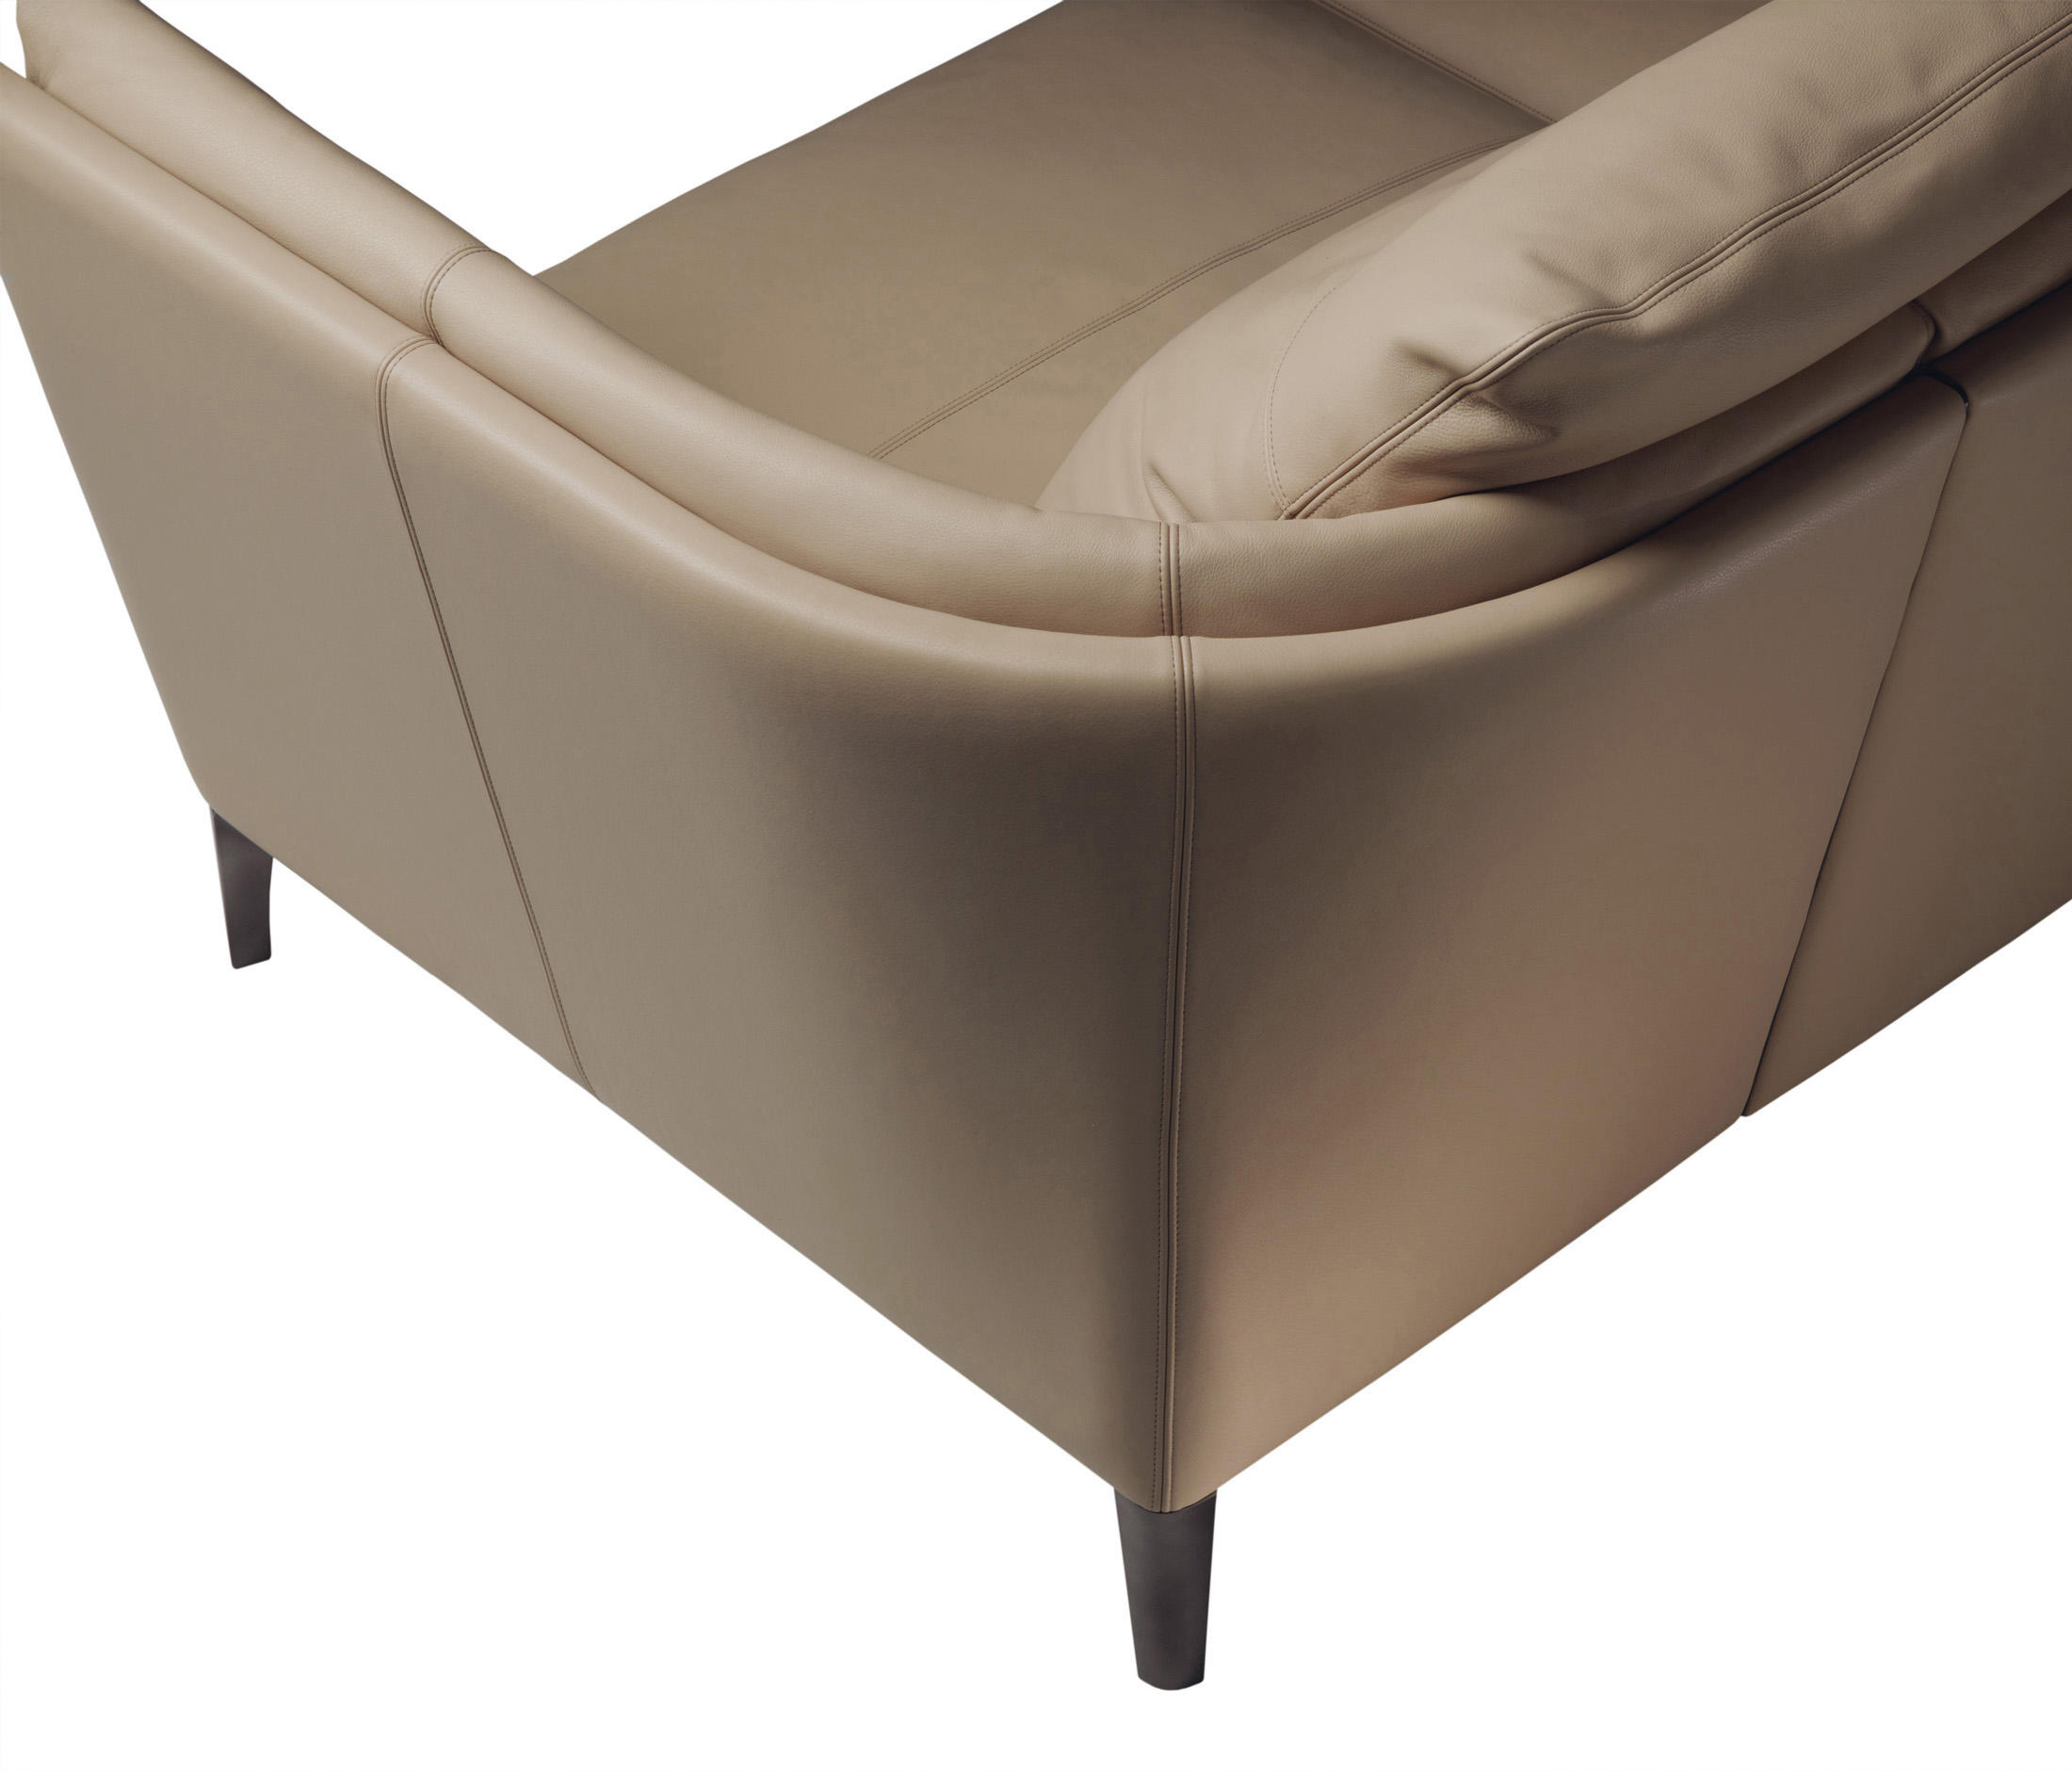 Bretagne Bed Beds From Poltrona Frau Architonic